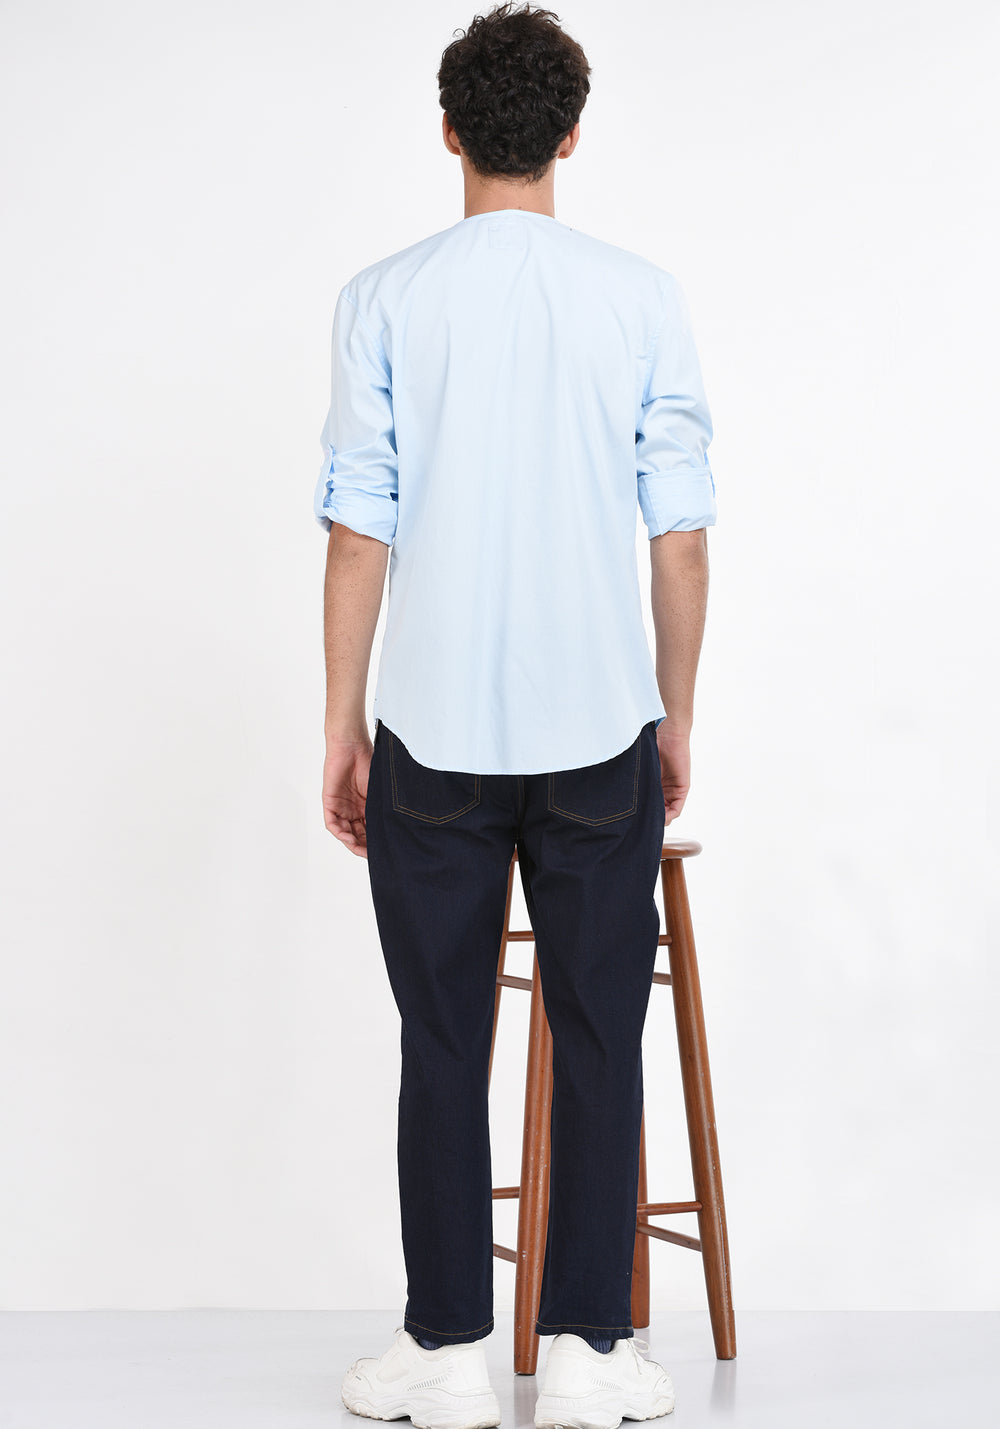 LONG SLEEVED SHIRT WITH A ROUND NECKLINE - LIGHT BLUE